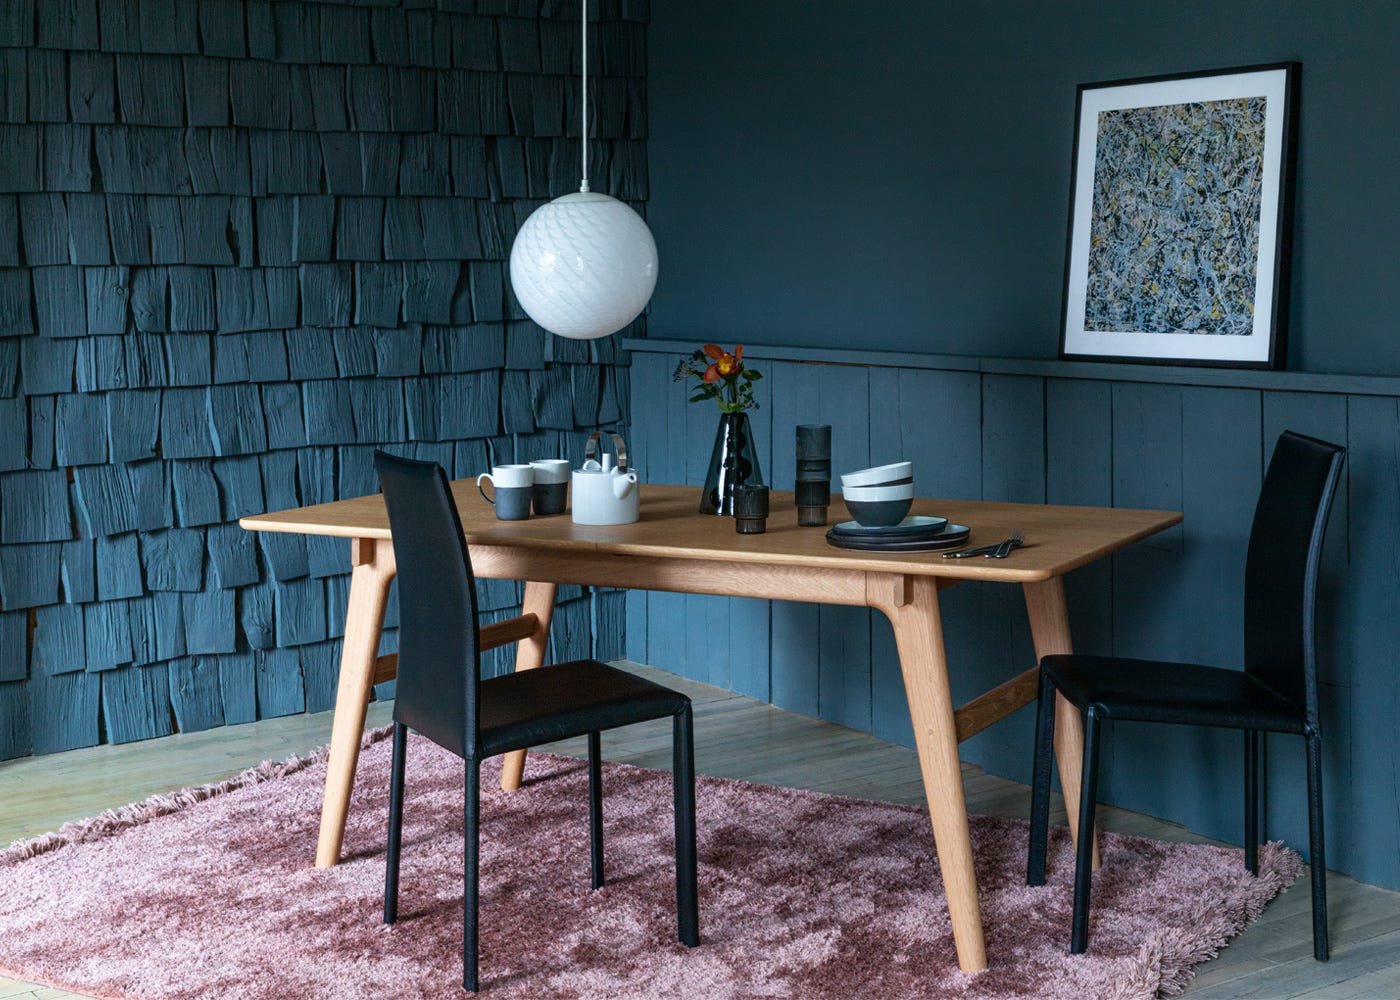 with the Blake Dining Table and Bronte Chairs